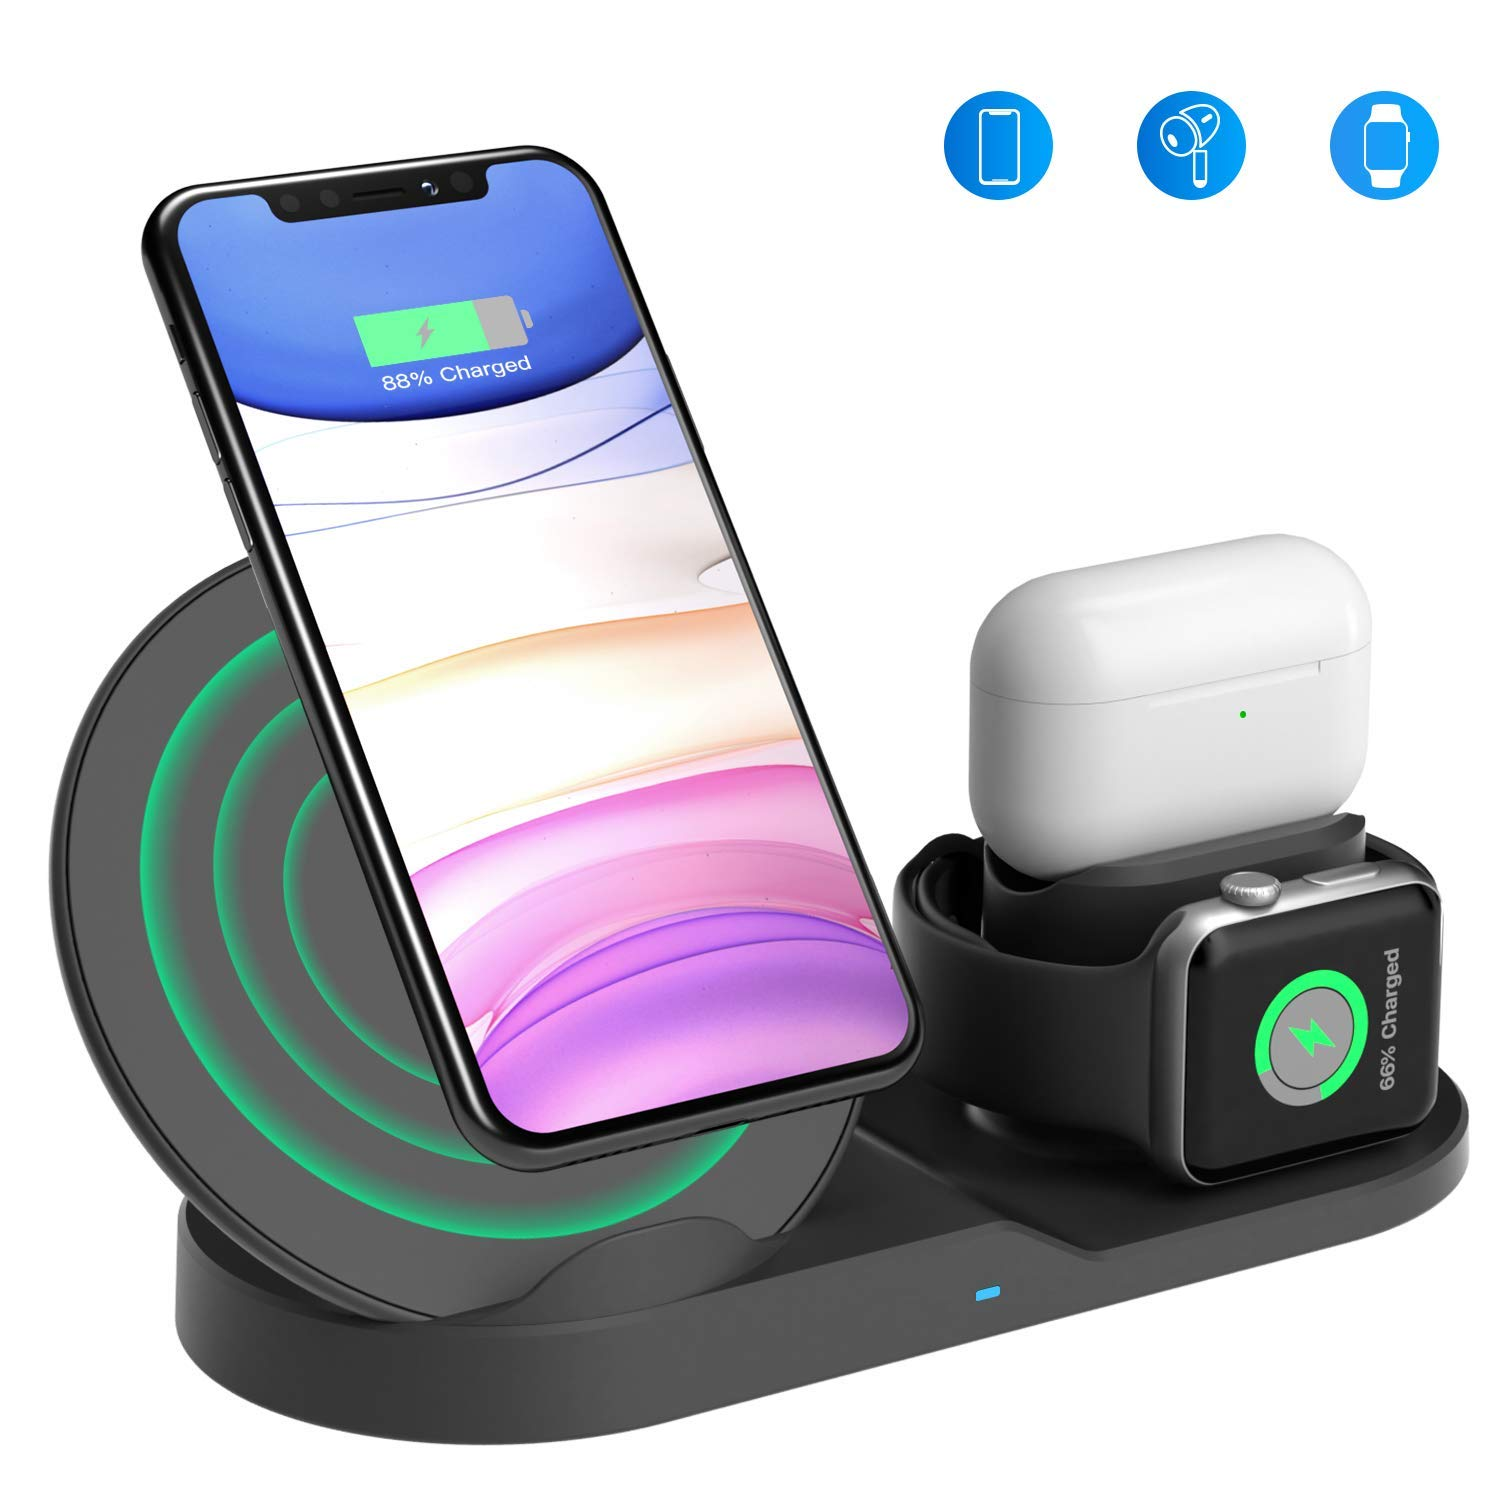 Wireless Charging Stand, Wireless 3 in 1 Charging Station Compatible iPhone 11/11 pro/11 Pro Max/Xs/XS Max/XR/X/8/8P Airpods 1, Airpods 2, Airpods pro, iWatch Series 5 4 3 2 1 - Adapter NOT Included